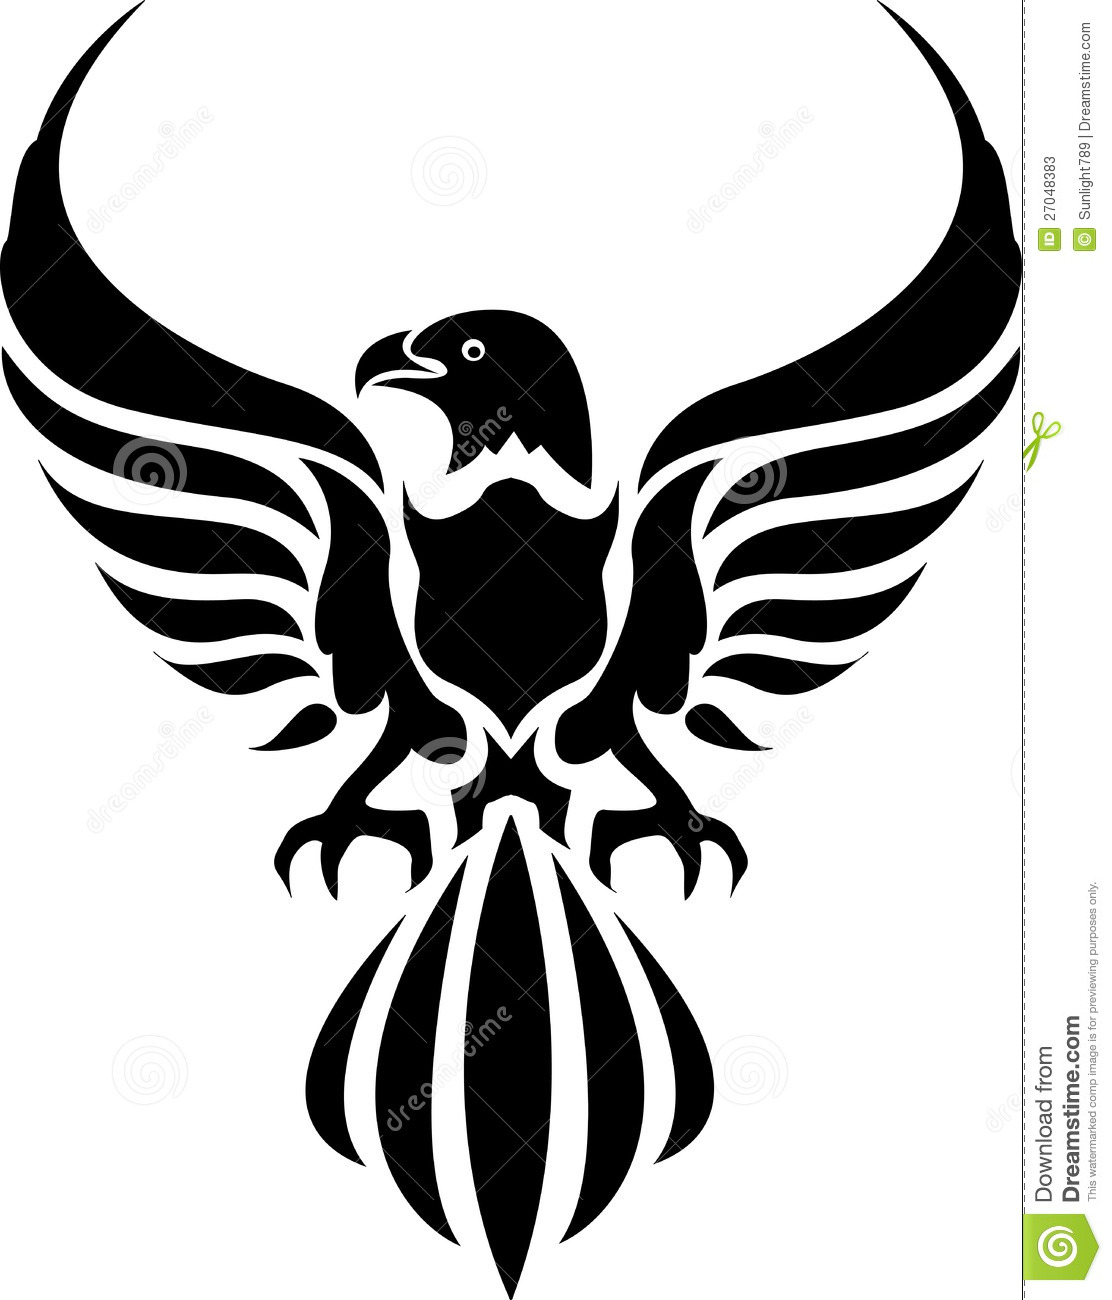 tribal eagle tattoo html tattoos more picture eagle for tattoo under code tattoo images